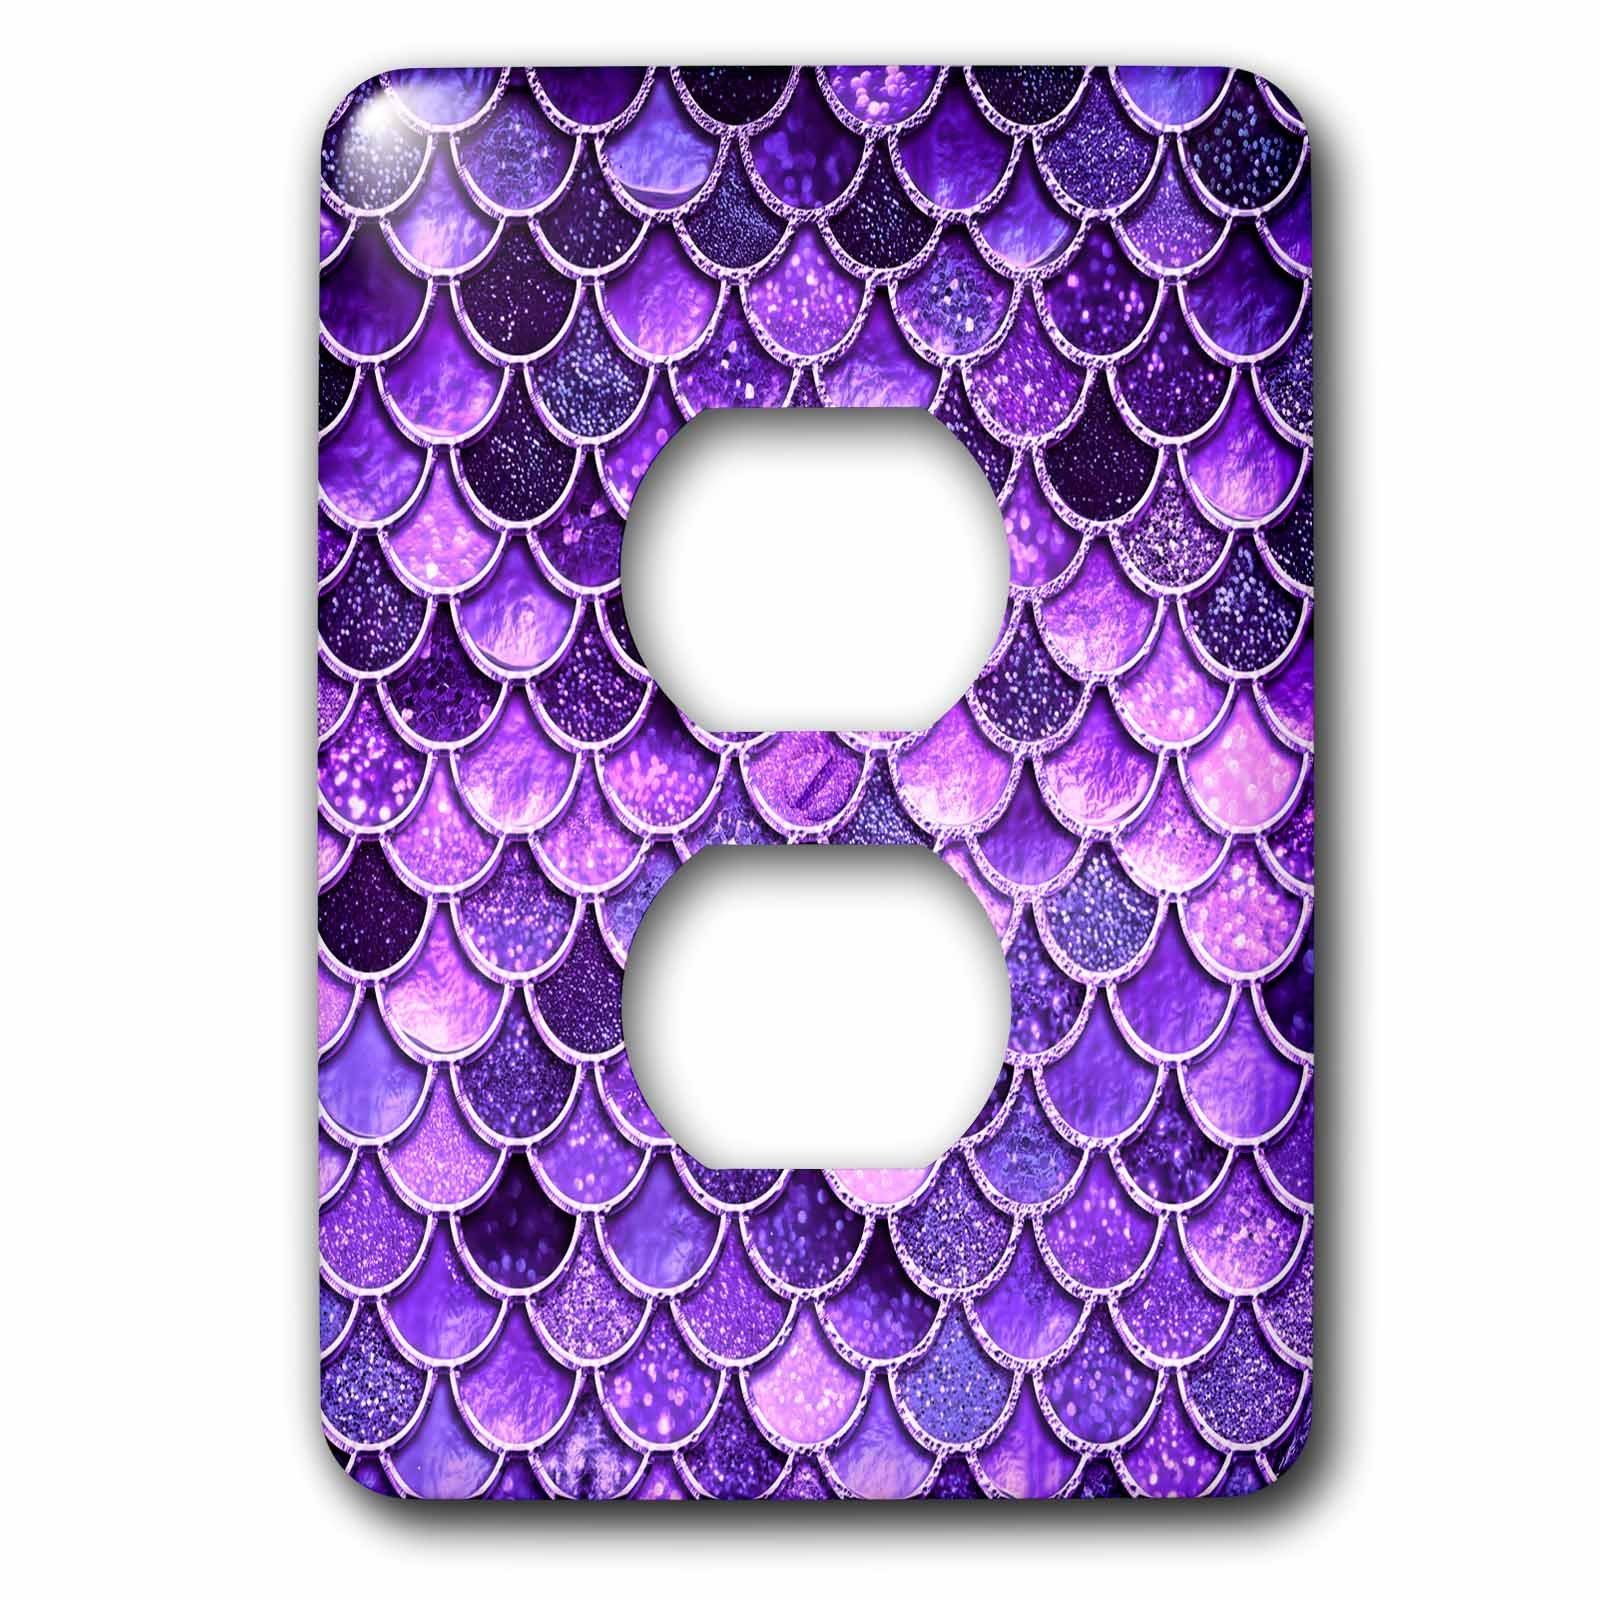 3dRose LSP_275449_6 Image of Sparkling Ultra Violet Shiny Luxury Mermaid Scales Glitter Plug Outlet Cover,